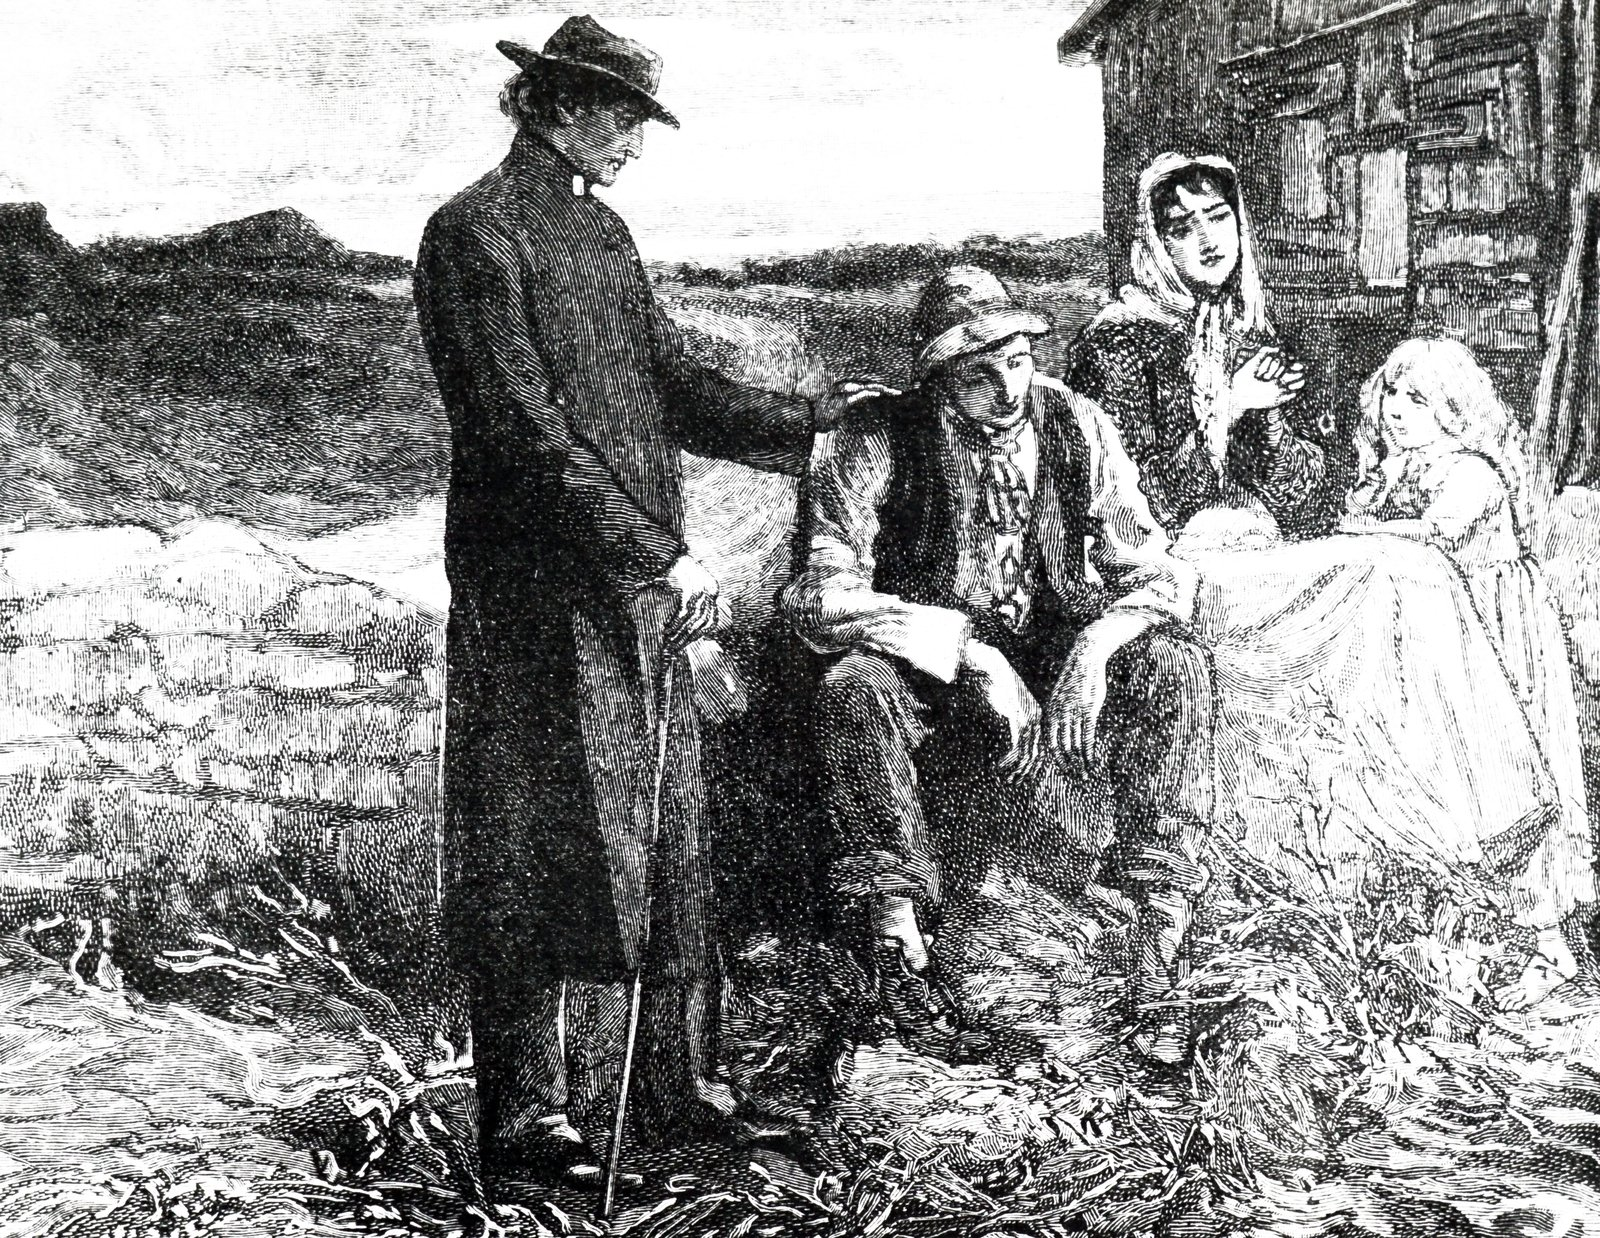 Image - An engraving depicting Father Mathew (Theobald Mathew 1790-1856) comforting a starving family during the Famine. Source: Universal History Archive/Universal Images Group via Getty Images